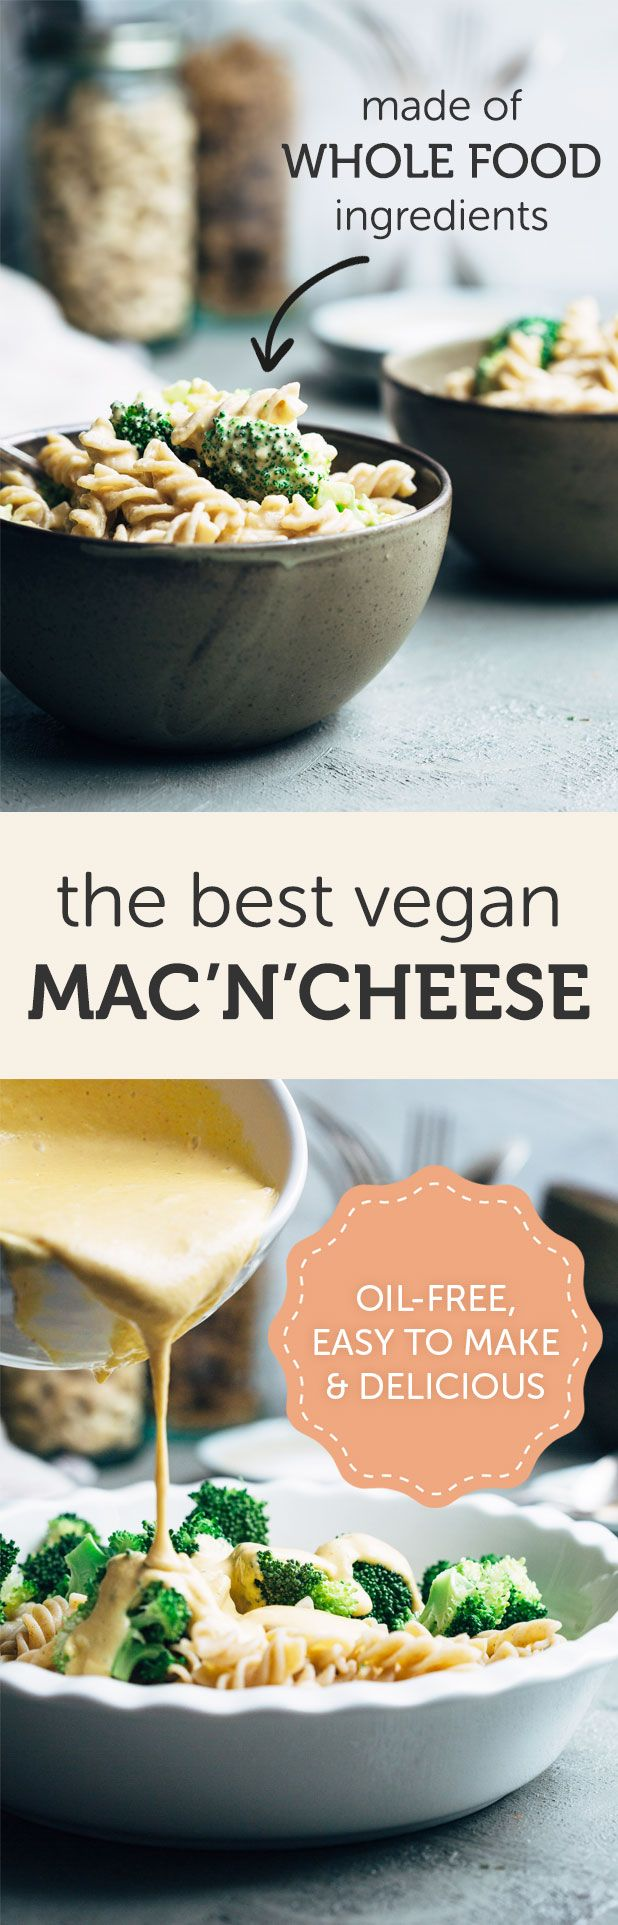 Best health food items - The Best Vegan Mac And Cheese Oil Free Healthy